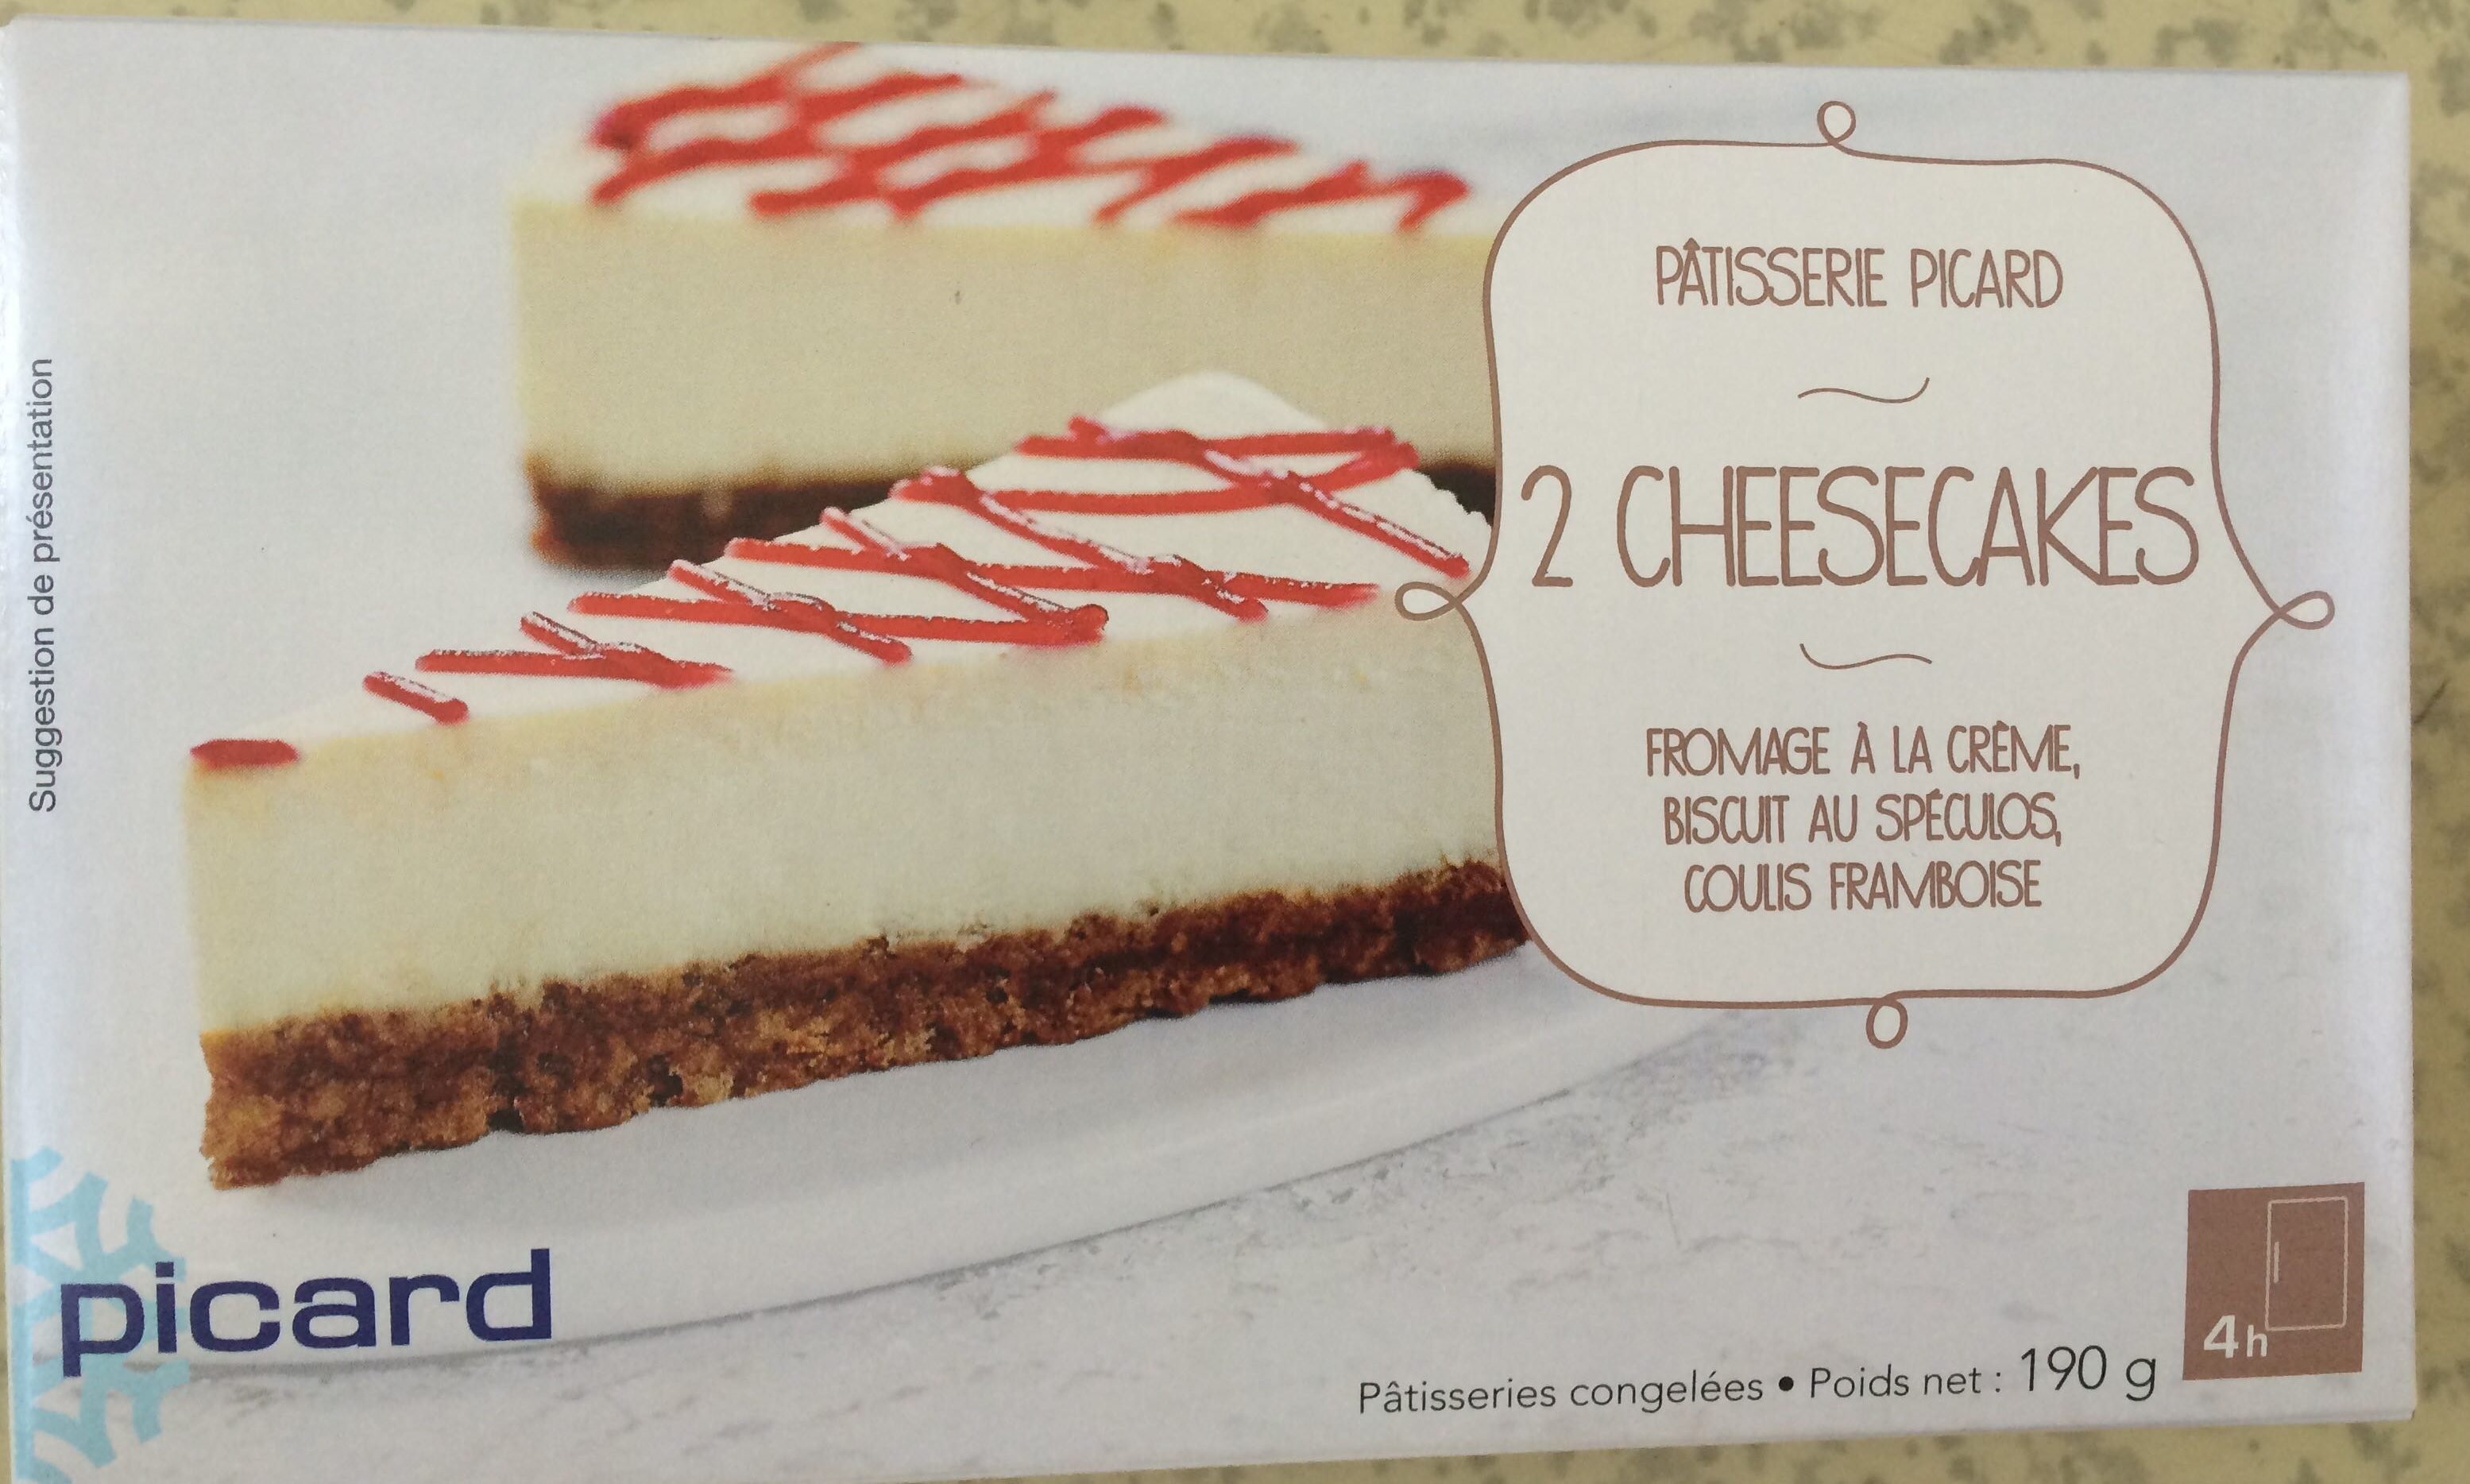 Cheesecake - Picard - 2